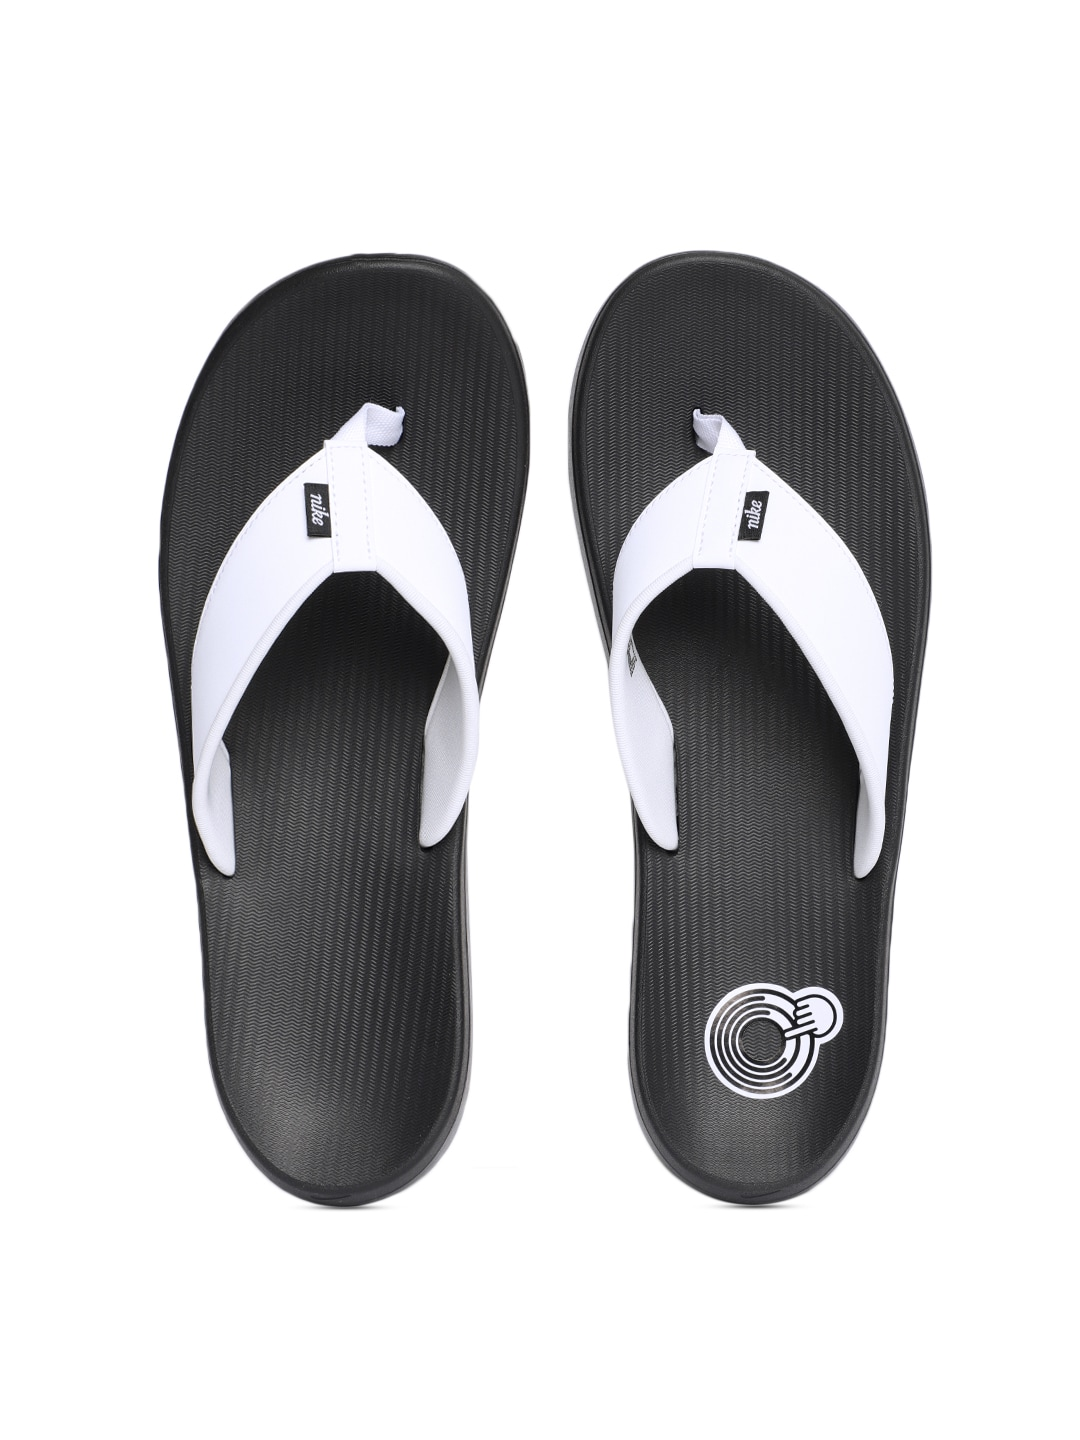 b496eea6d Nike Slipper - Buy Nike Slipper Online in India